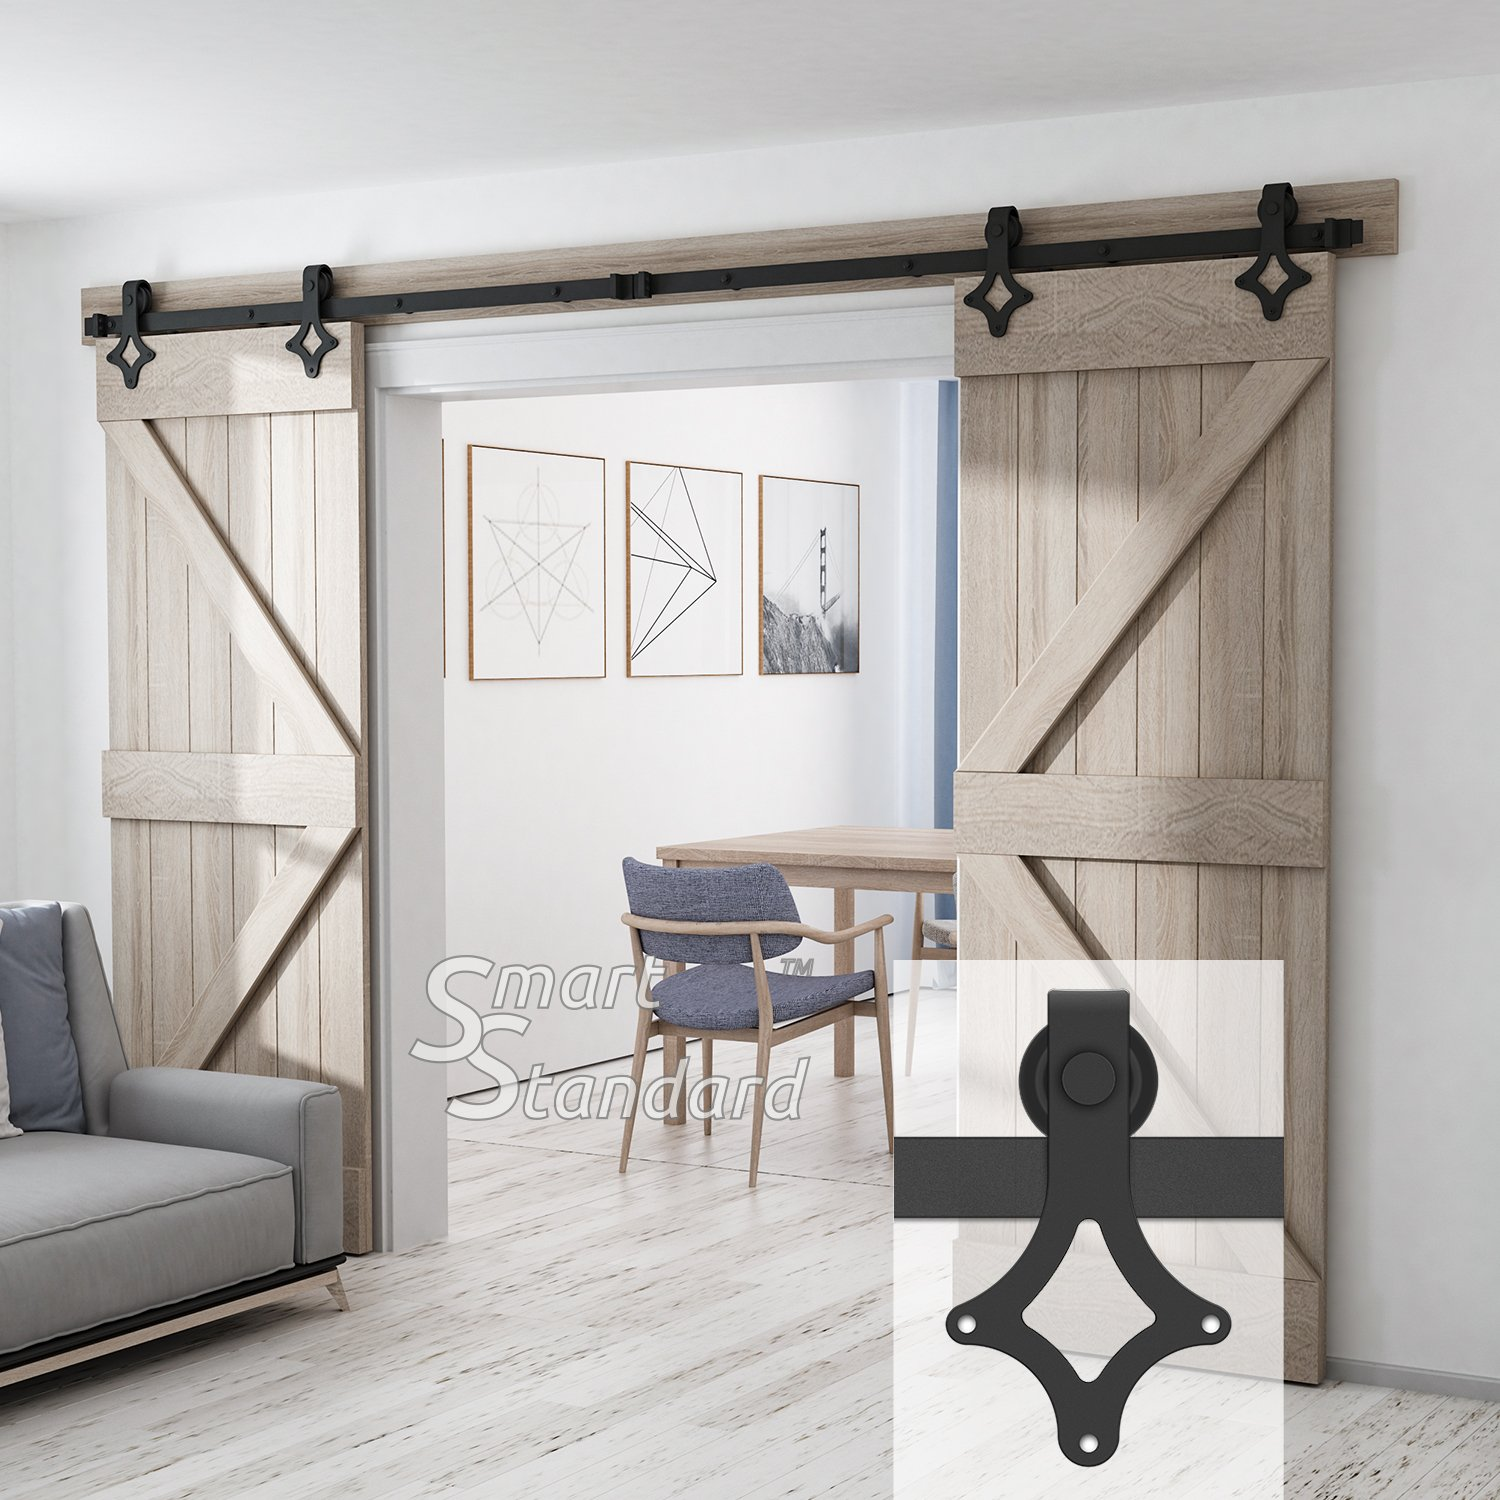 10ft Heavy Duty Sturdy Double Door Sliding Barn Door Hardware Kit - Super Smoothly and Quietly - Simple and Easy to Install - Includes Step-by-Step Instruction -Fit 30'' Wide Door(Rhombic Shape Hanger) by SMARTSTANDARD (Image #2)